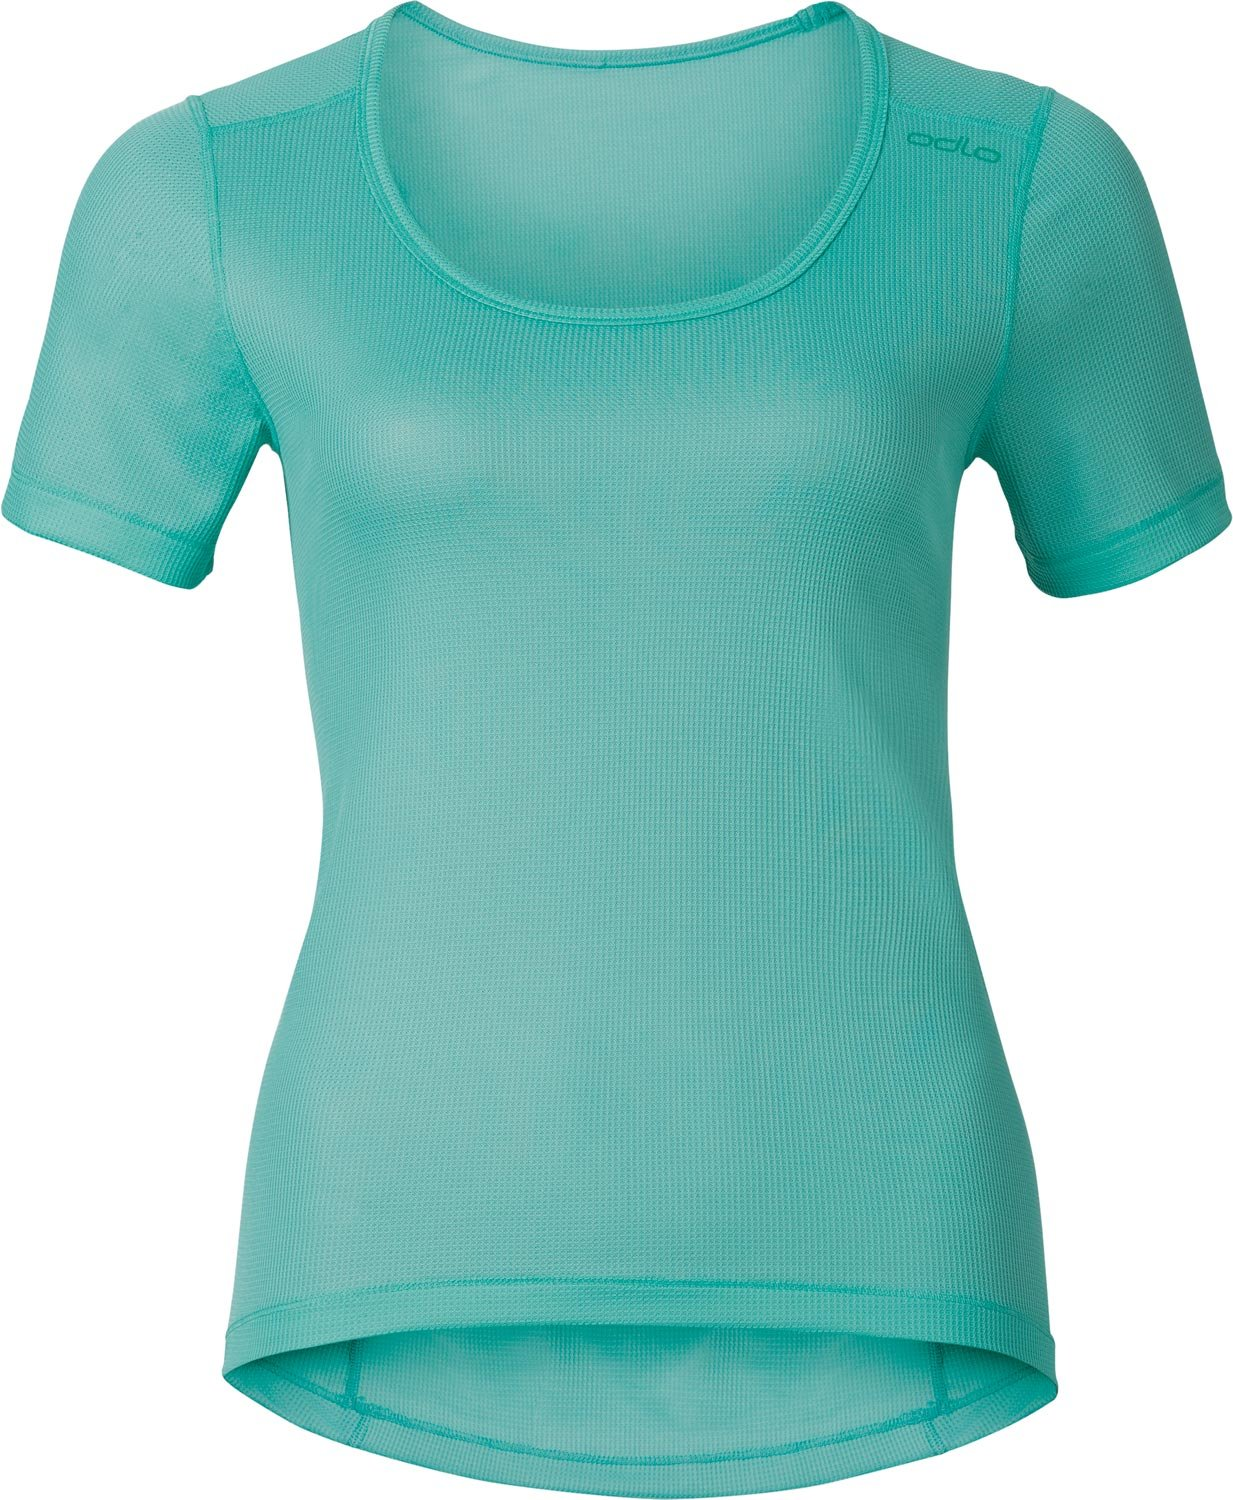 Odlo Damen Shirt Short Sleeve Crew Neck Cubic bestellen